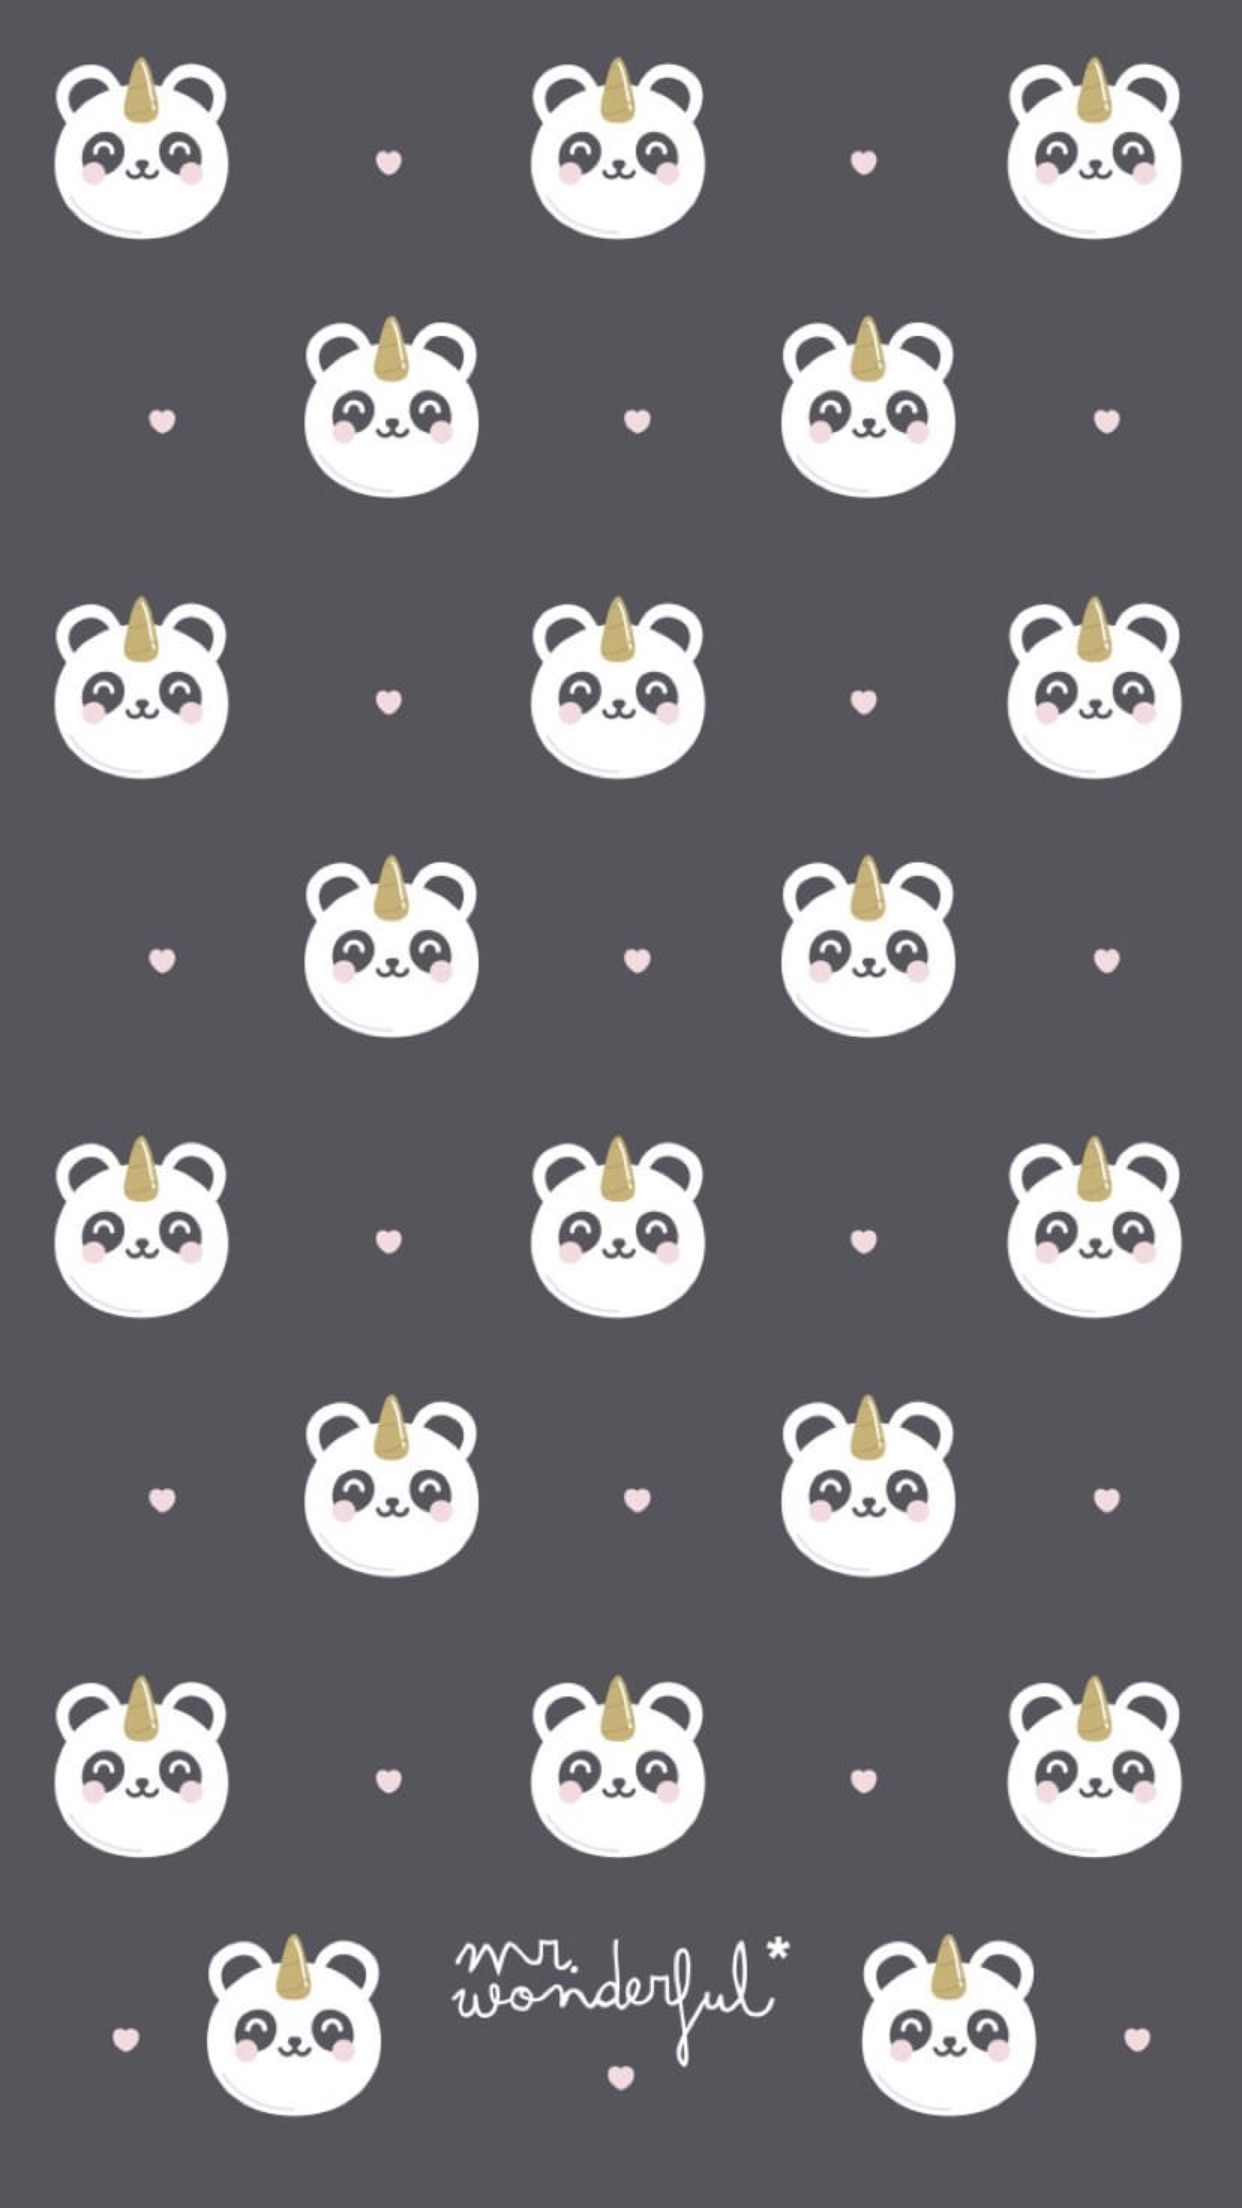 fondos de pantalla, fondo de pantalla, fondo de pantalla divertido, fondo de pantalla femenino, girly backgrounds, cool background, colorful backfround, fondo de pantalla patron, pattern, unicorn background, fondo de pantalla de unicornios.